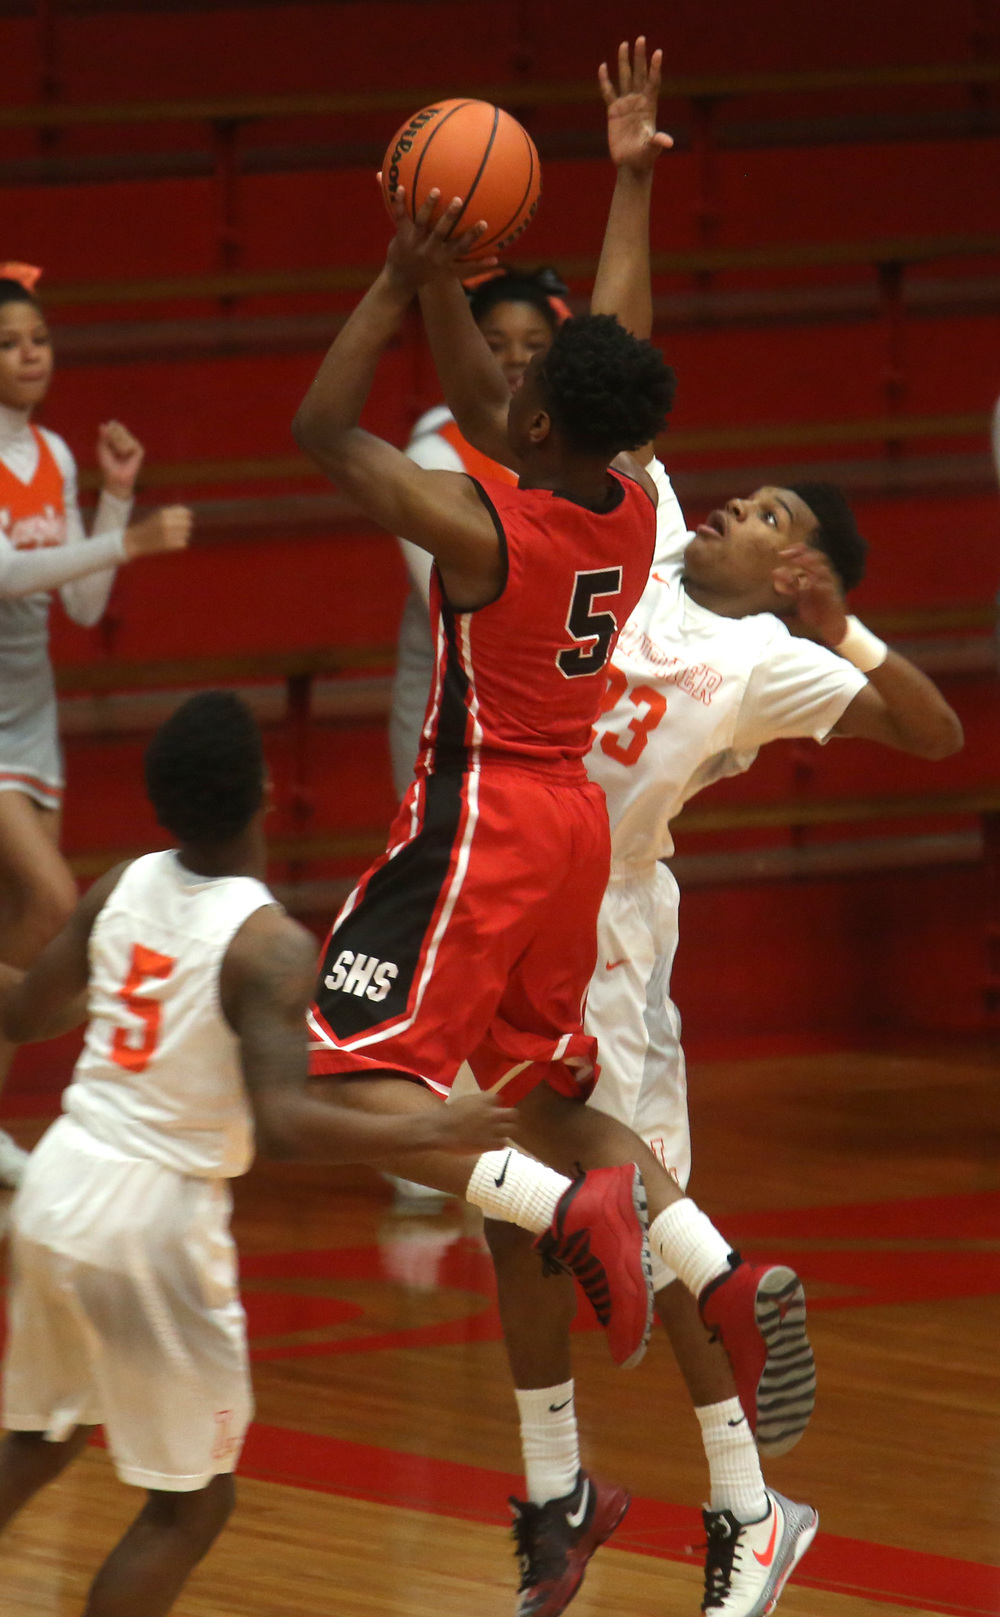 Springfield player Isaac Nelson puts up a shot while being defended by Lanphier's Aundrae Williams in the first half. David Spencer/The State Journal Register